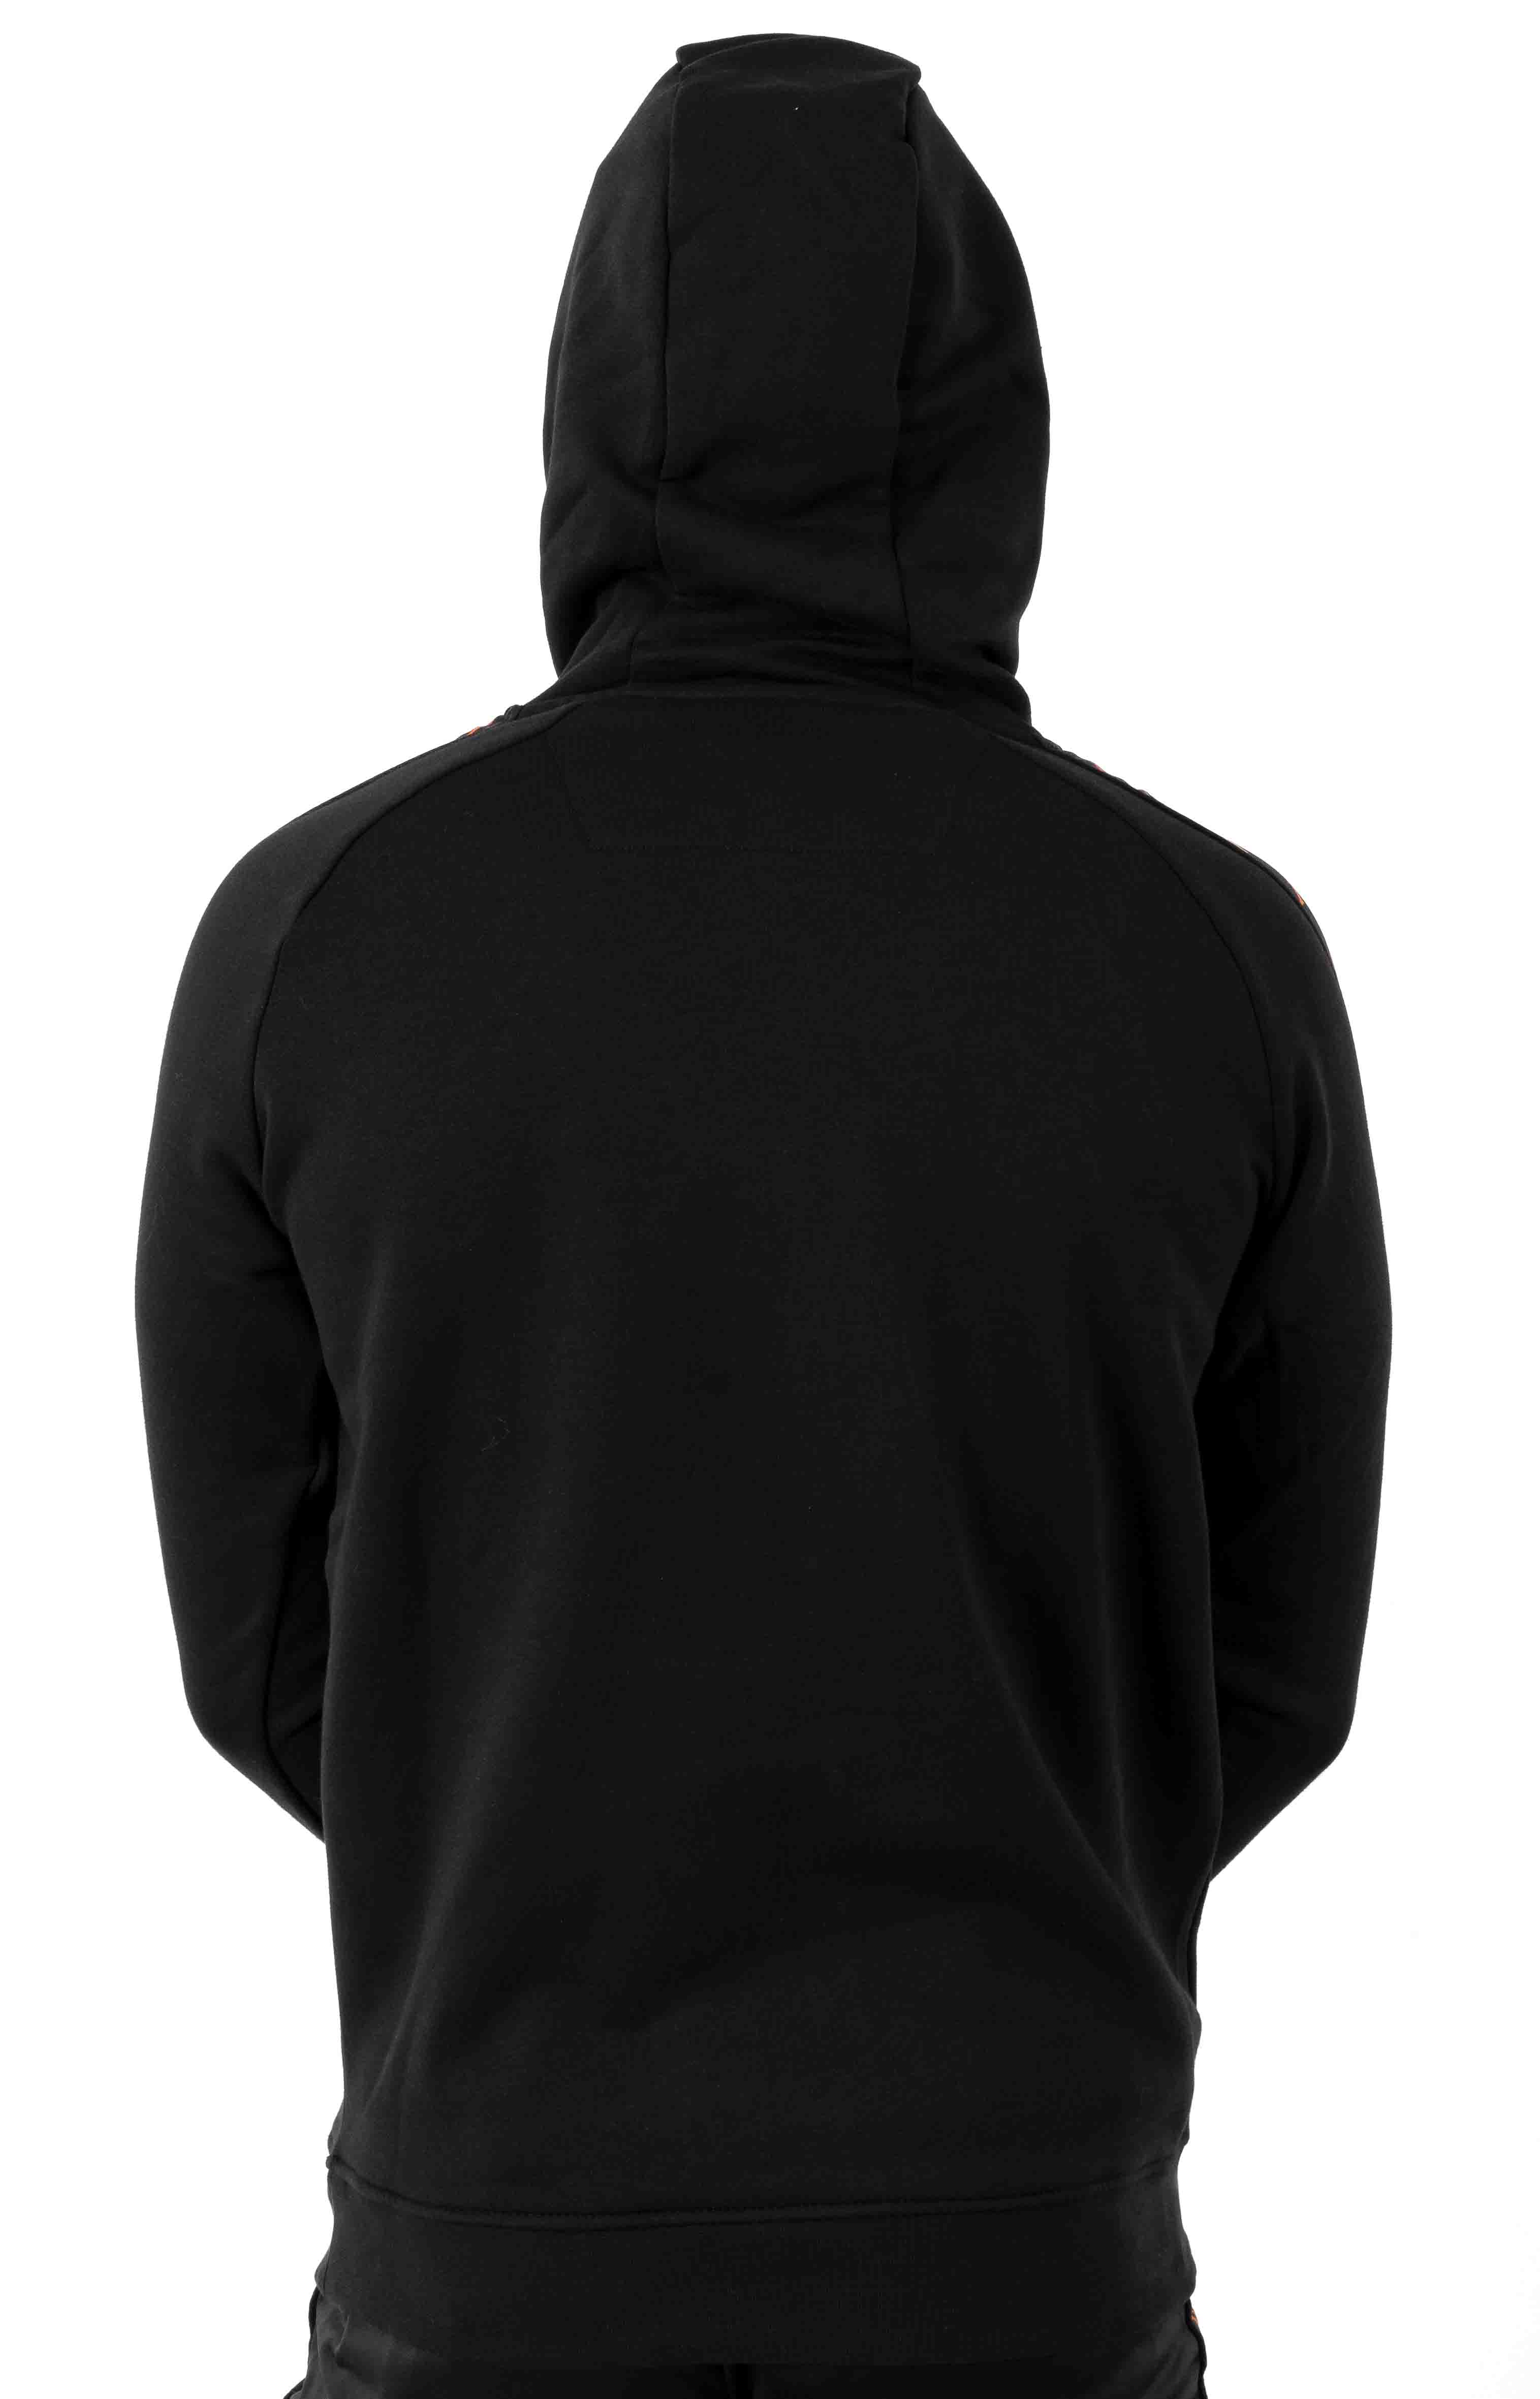 222 Banda Dinto Pullover Hoodie - Black/Apricot 3